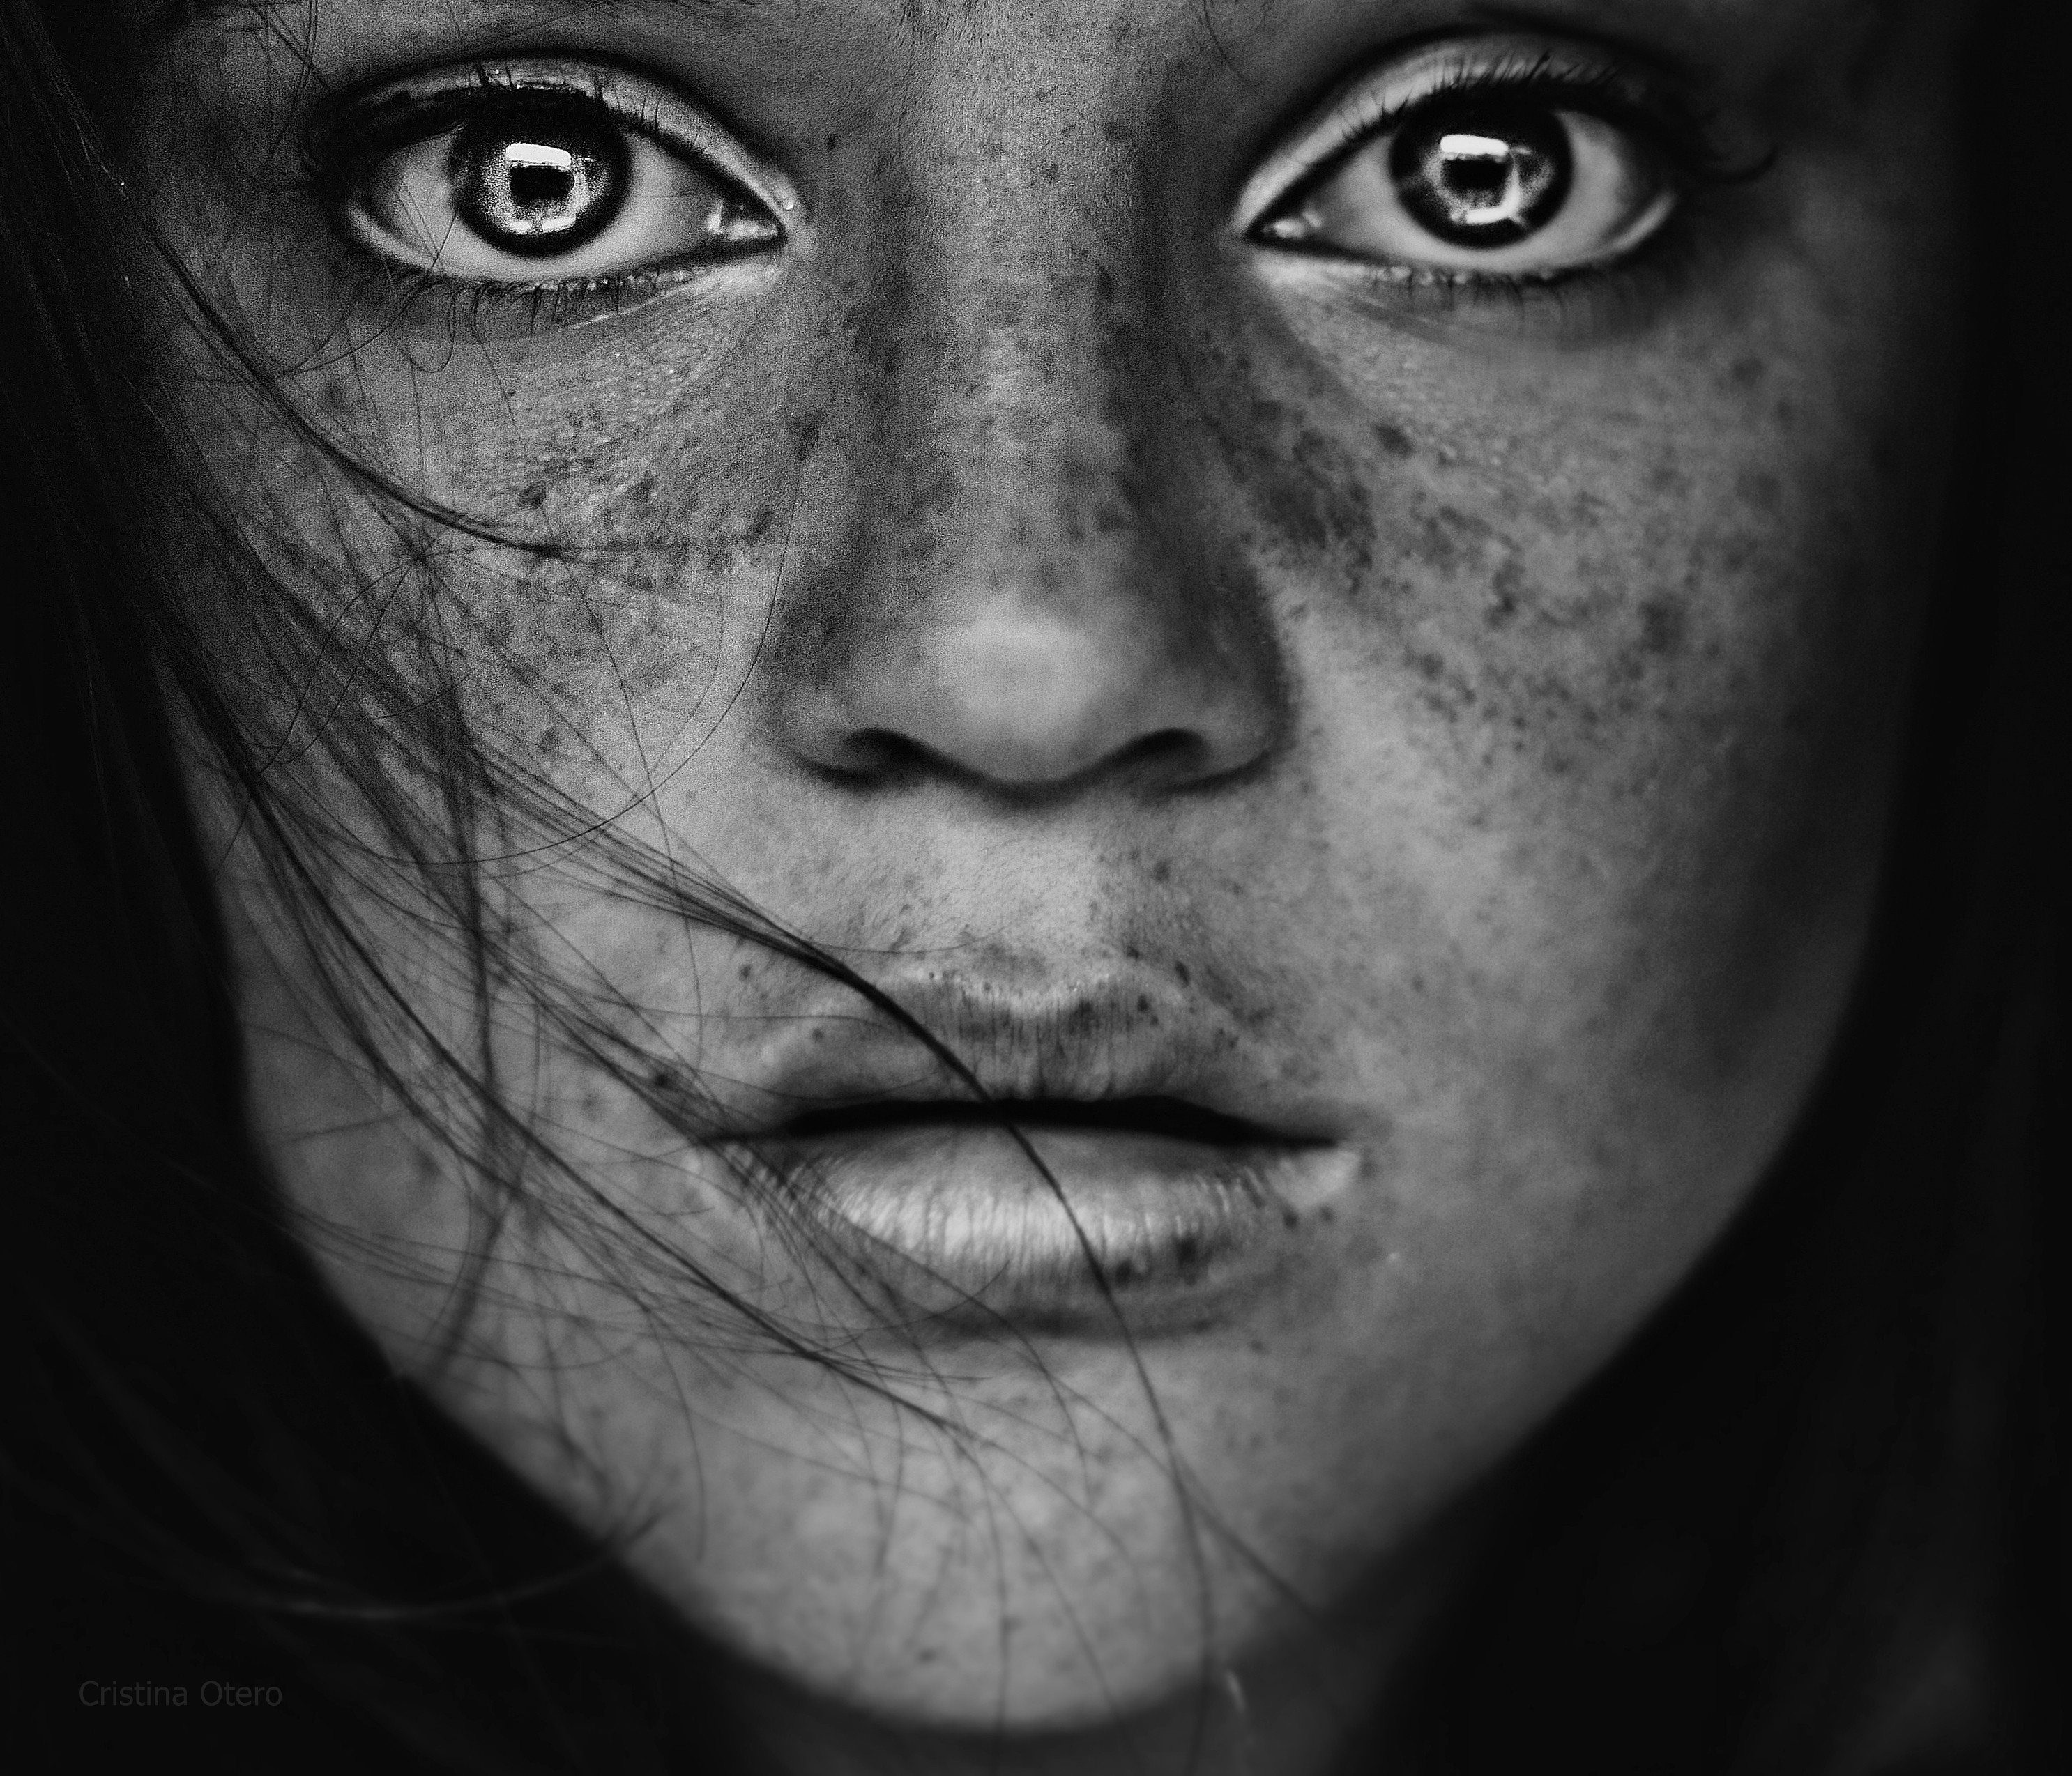 Black and White Face with Deep Eyes #4242445, 2972x2548 ...